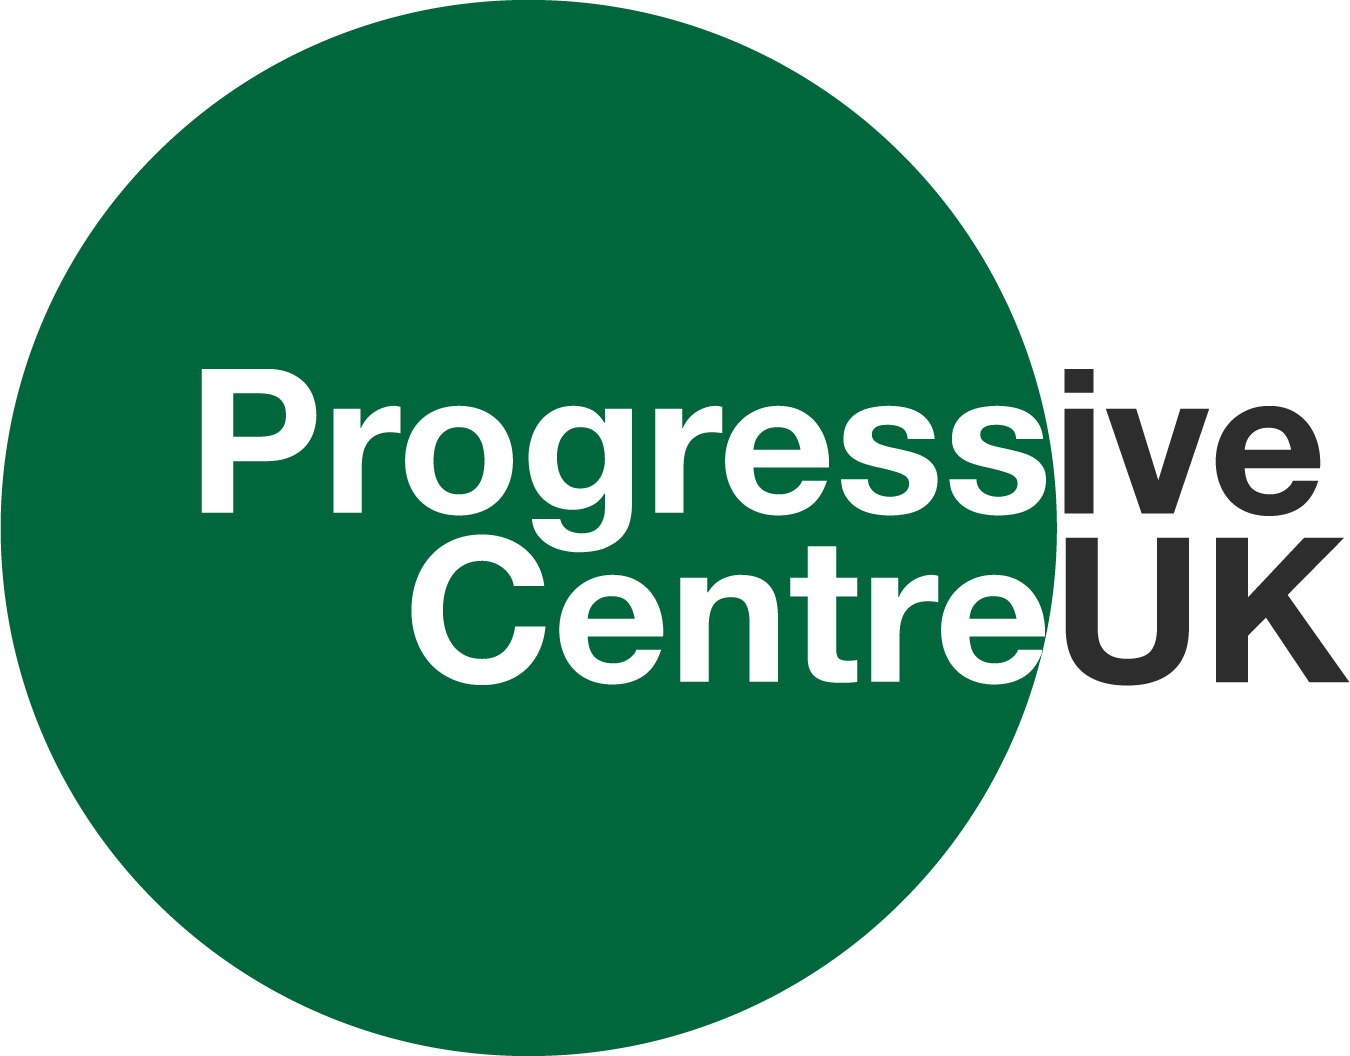 Progressive Centre UK